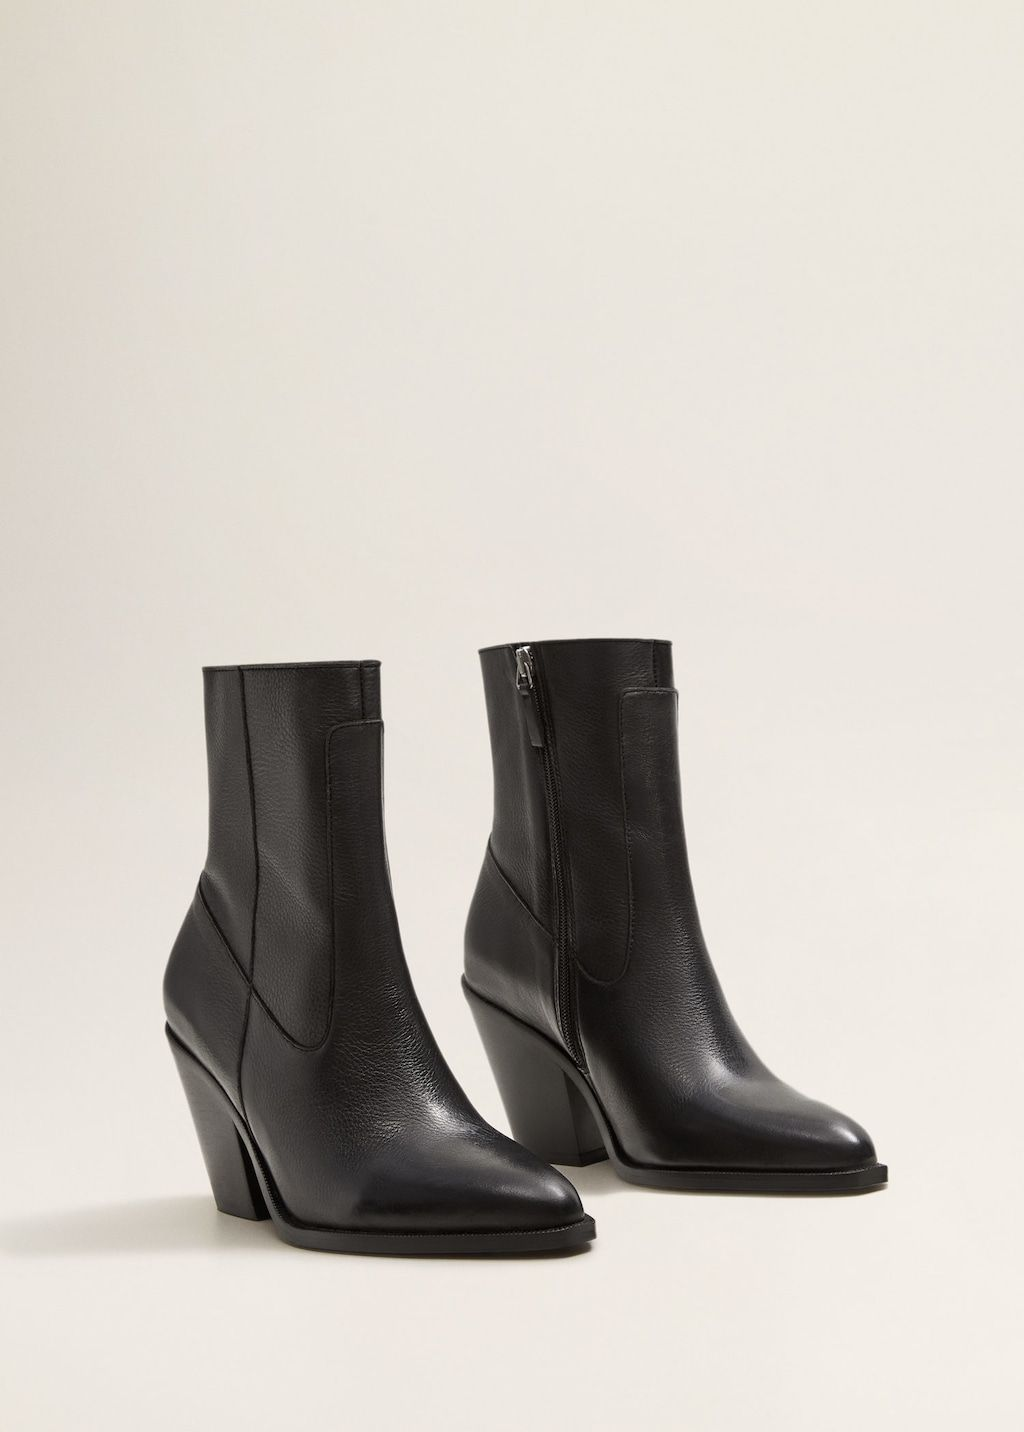 323c8f8a513 Leather pointed ankle boots - Women in 2019   >shoes.   Pointed ...